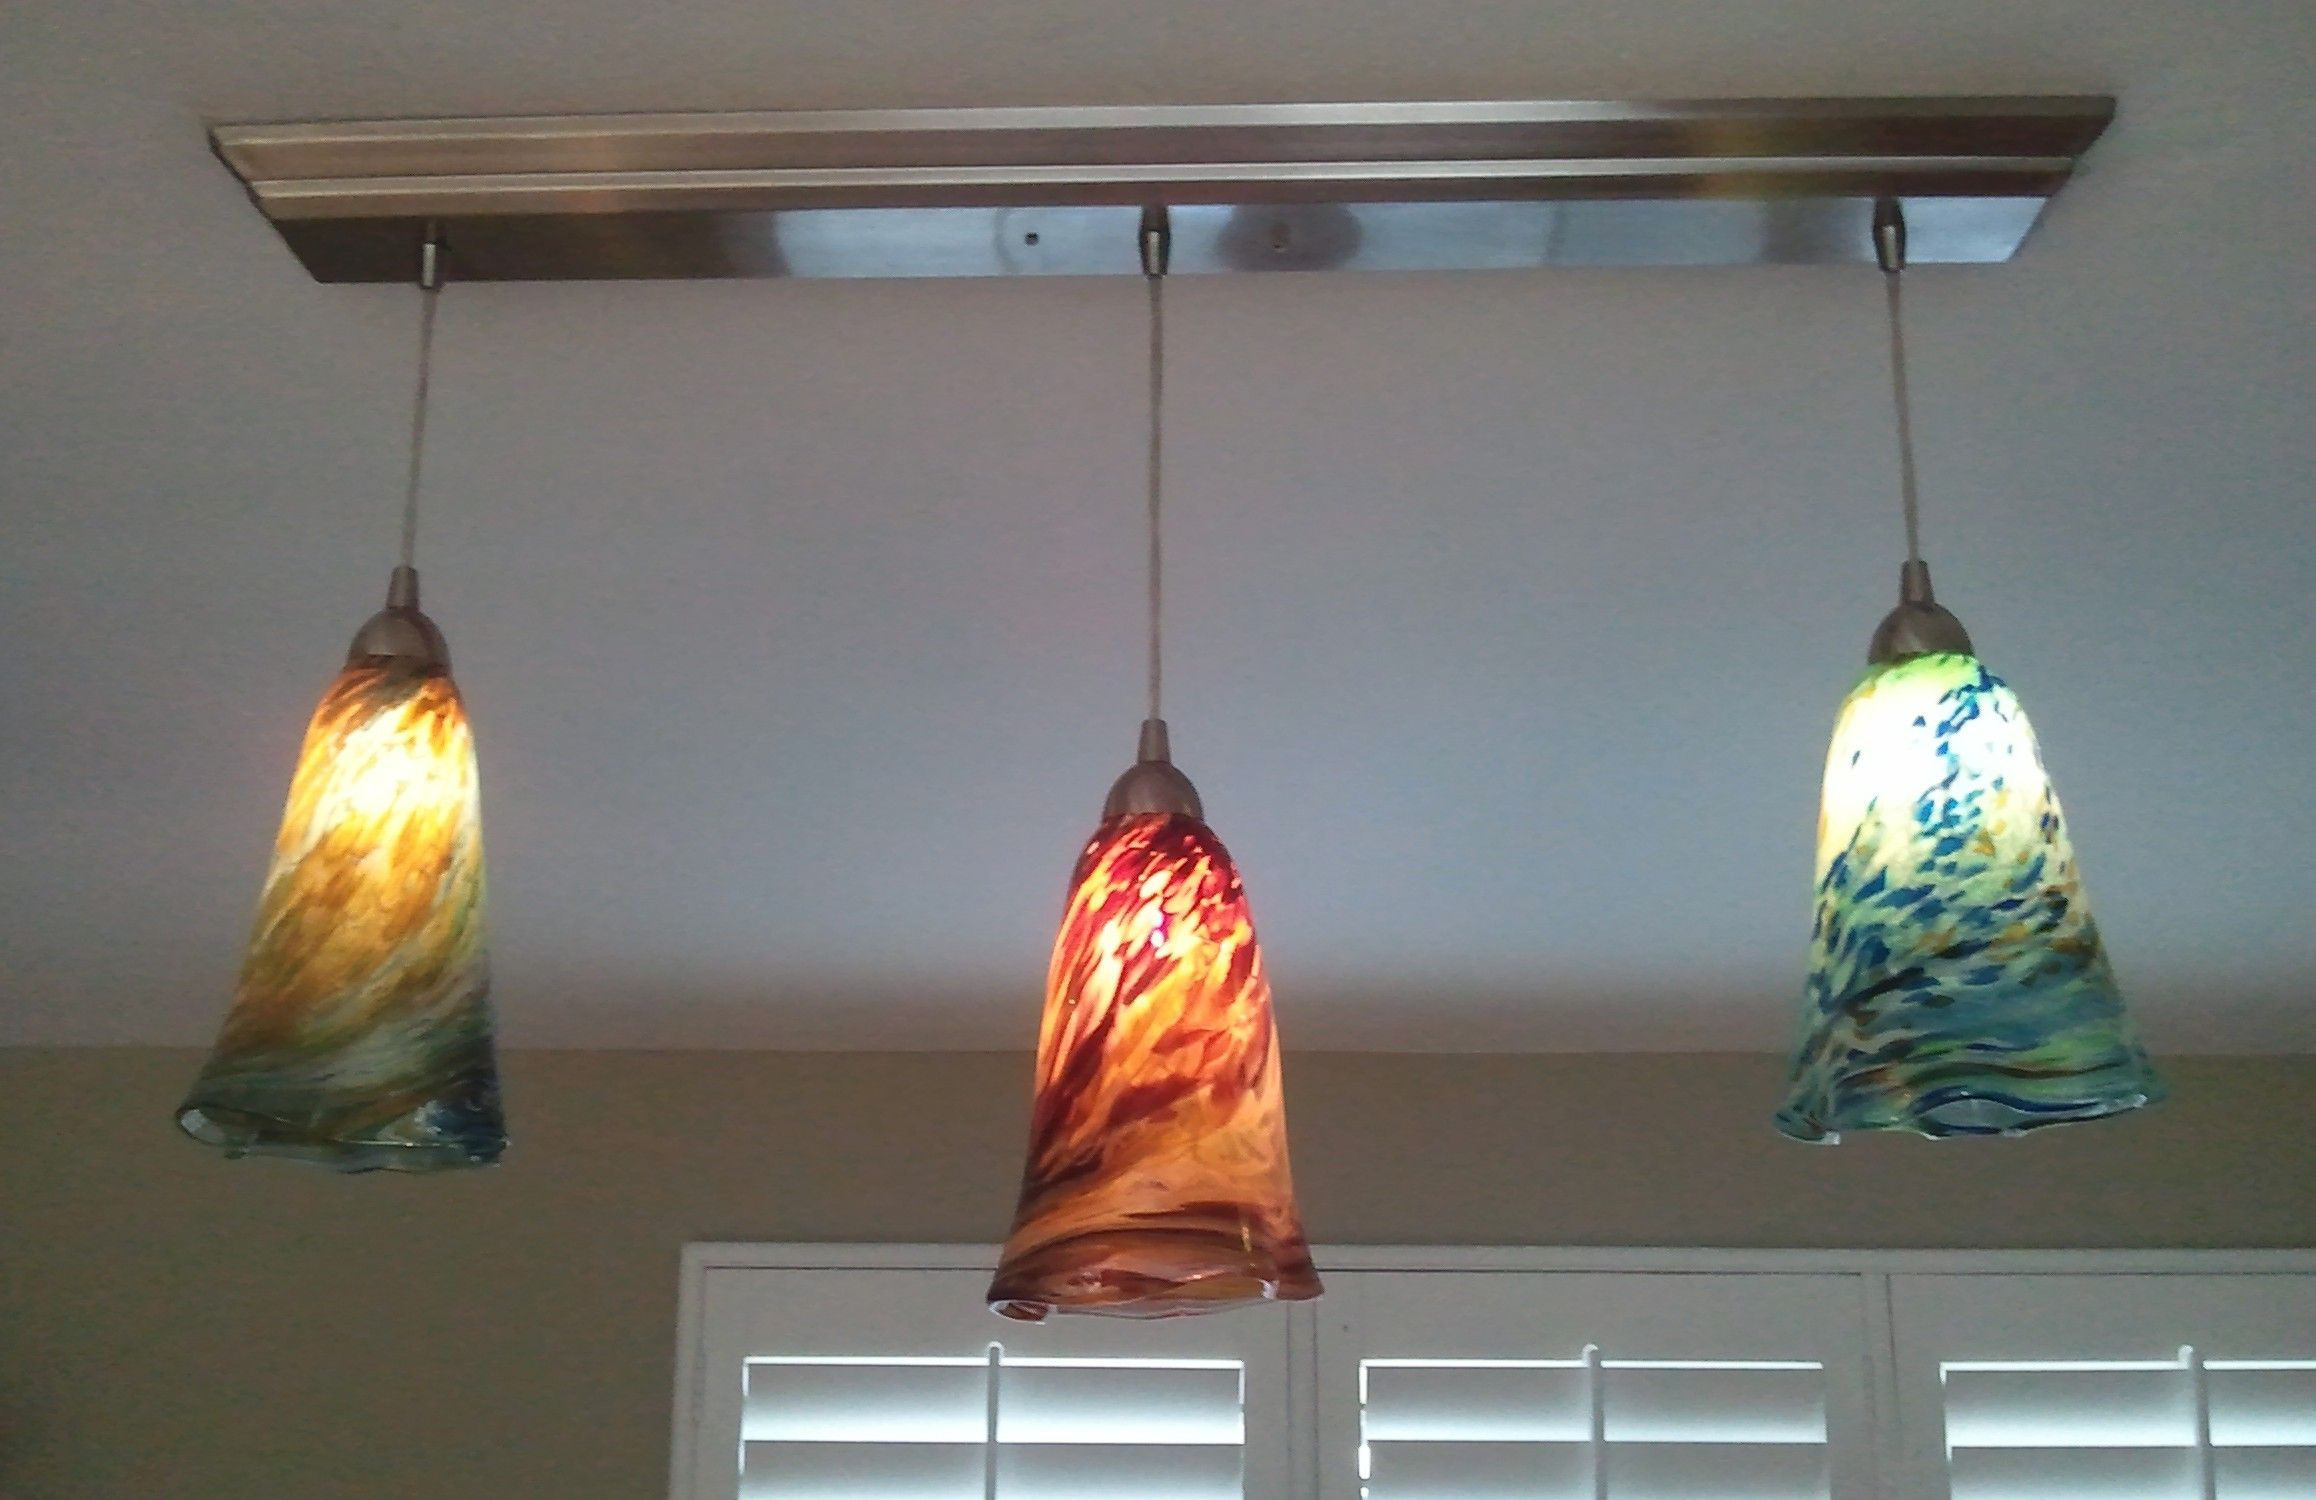 High Quality Replacement Lamp Shades For Pendant Lights Nice Ideas